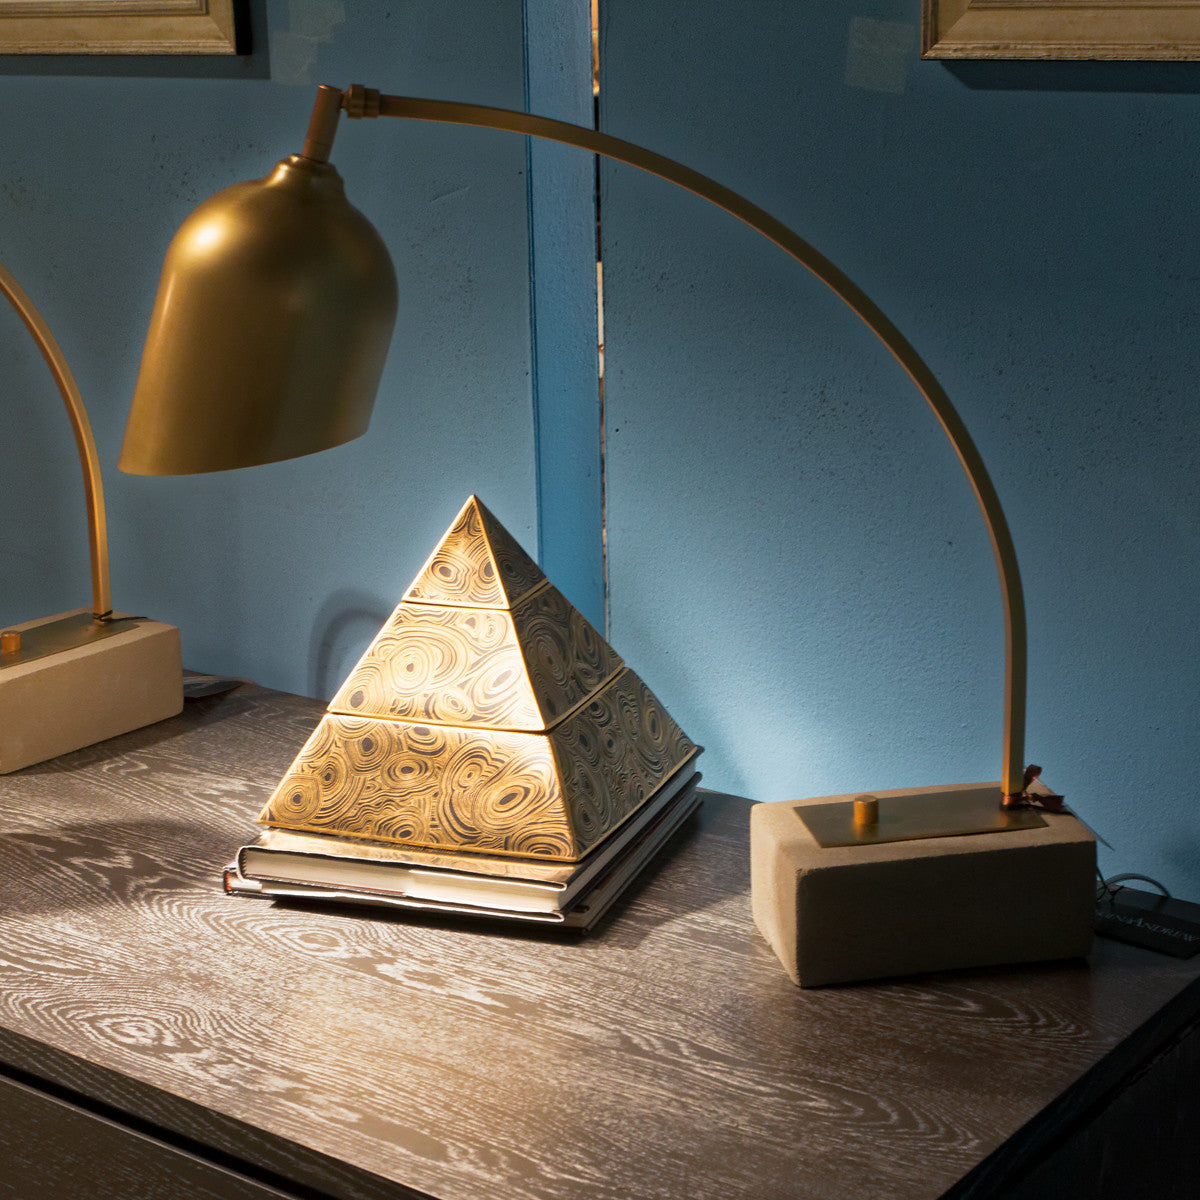 decor the wright by accessories regina coastal lamp lamps andrews inspired lighting alt gallery coral andrew home silver